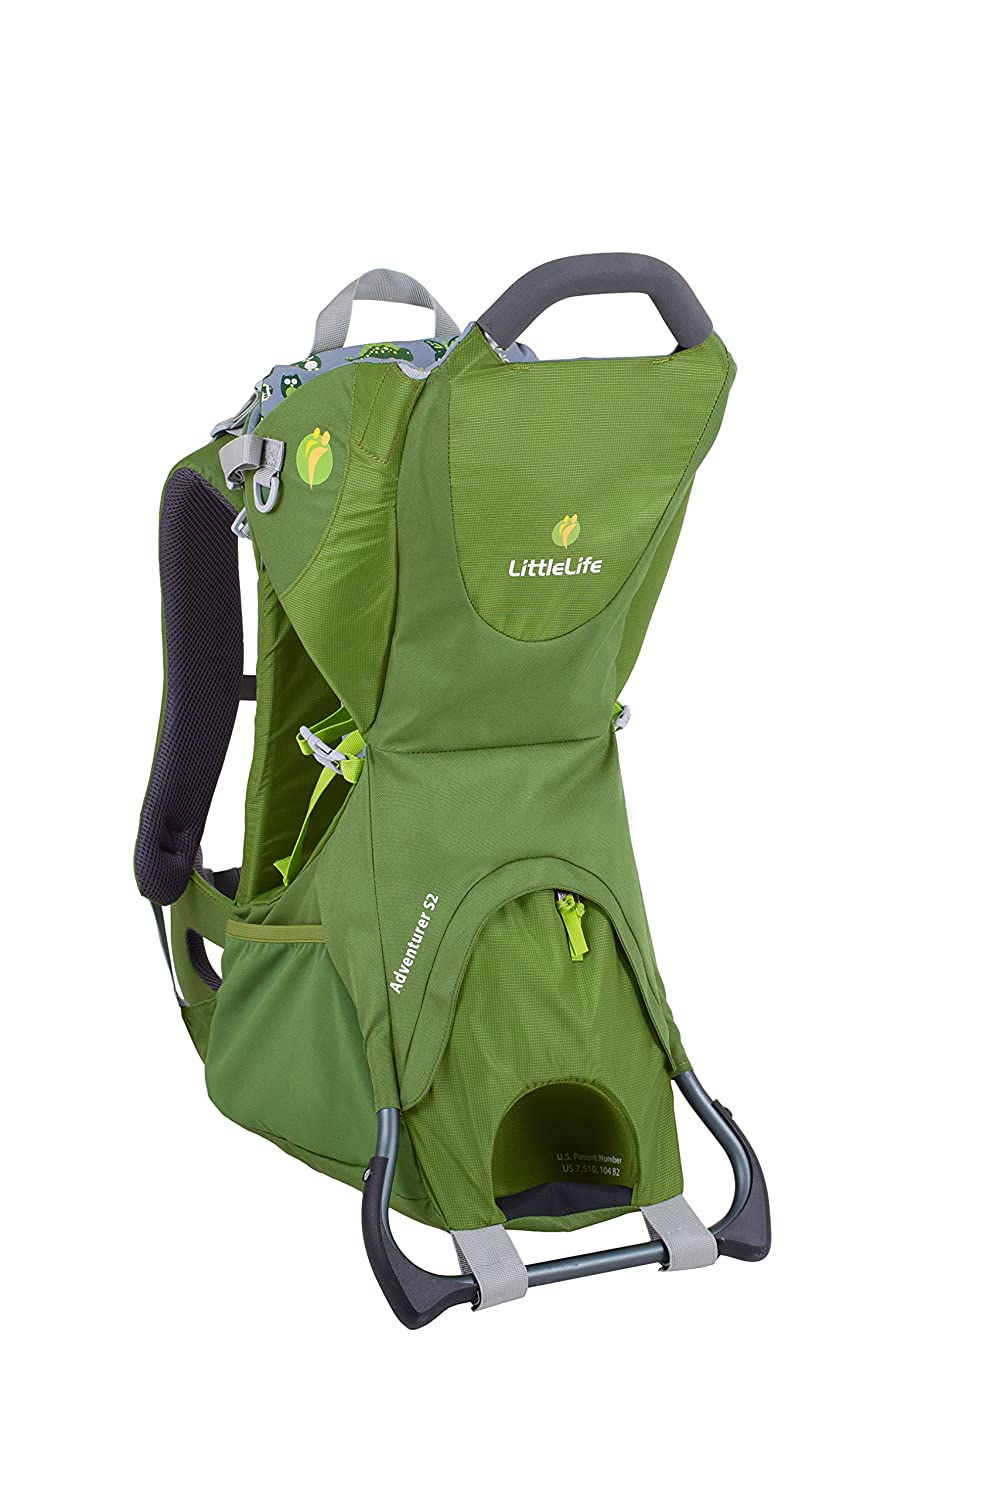 LittleLife Adventurer S2 Child Carrier Blue One Size